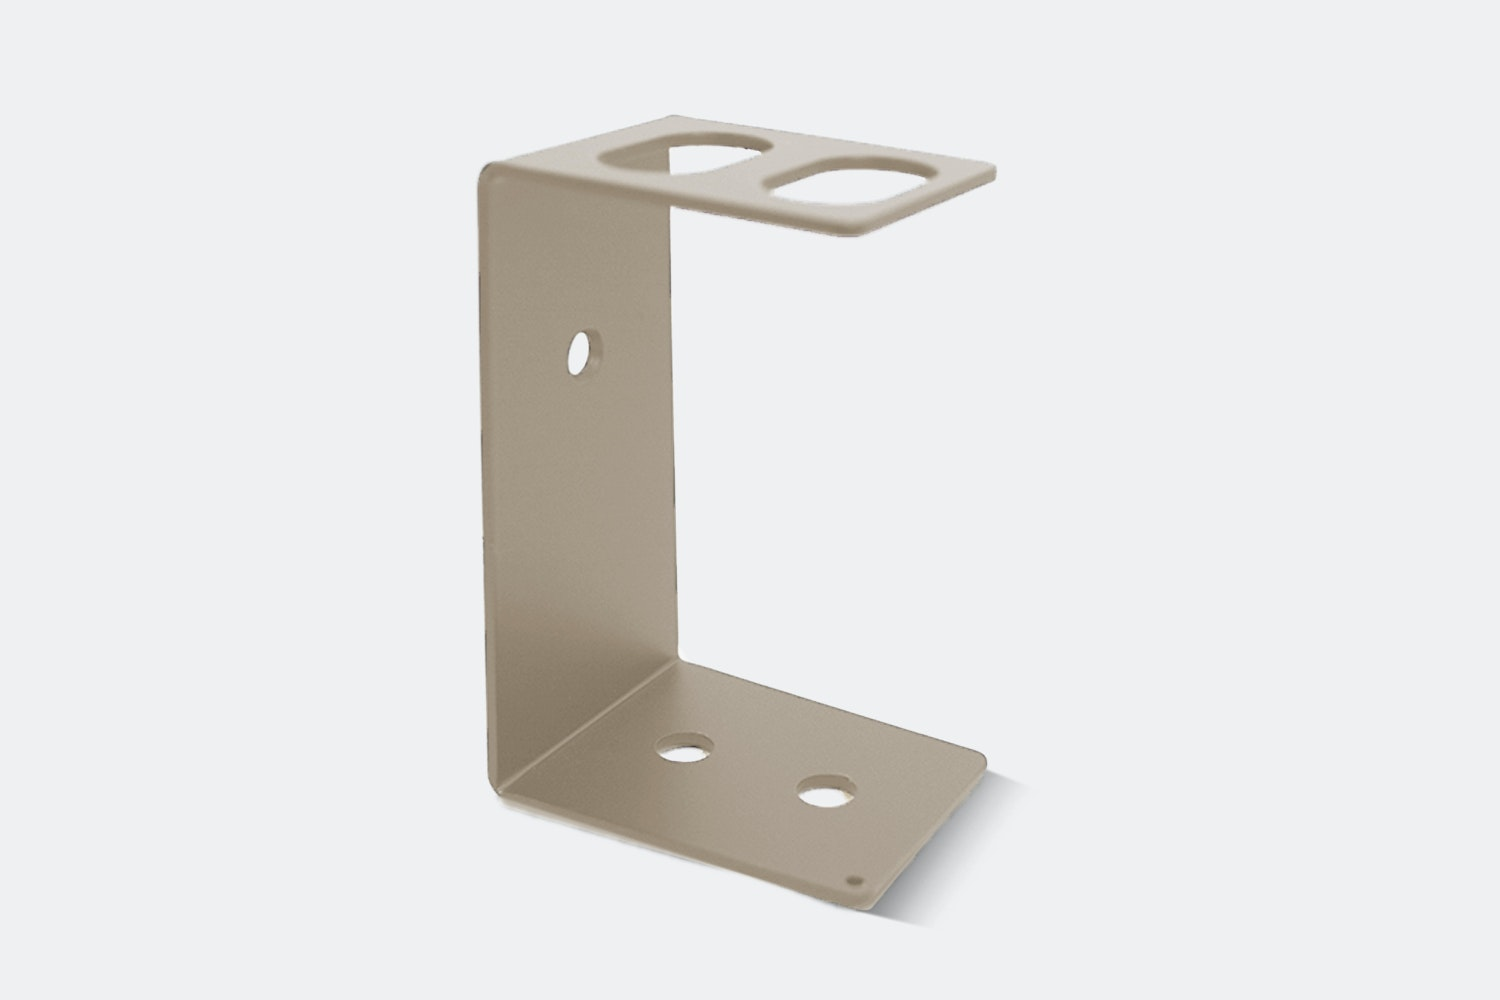 Dual Razor Stand – Stainless Steel (+ $6)